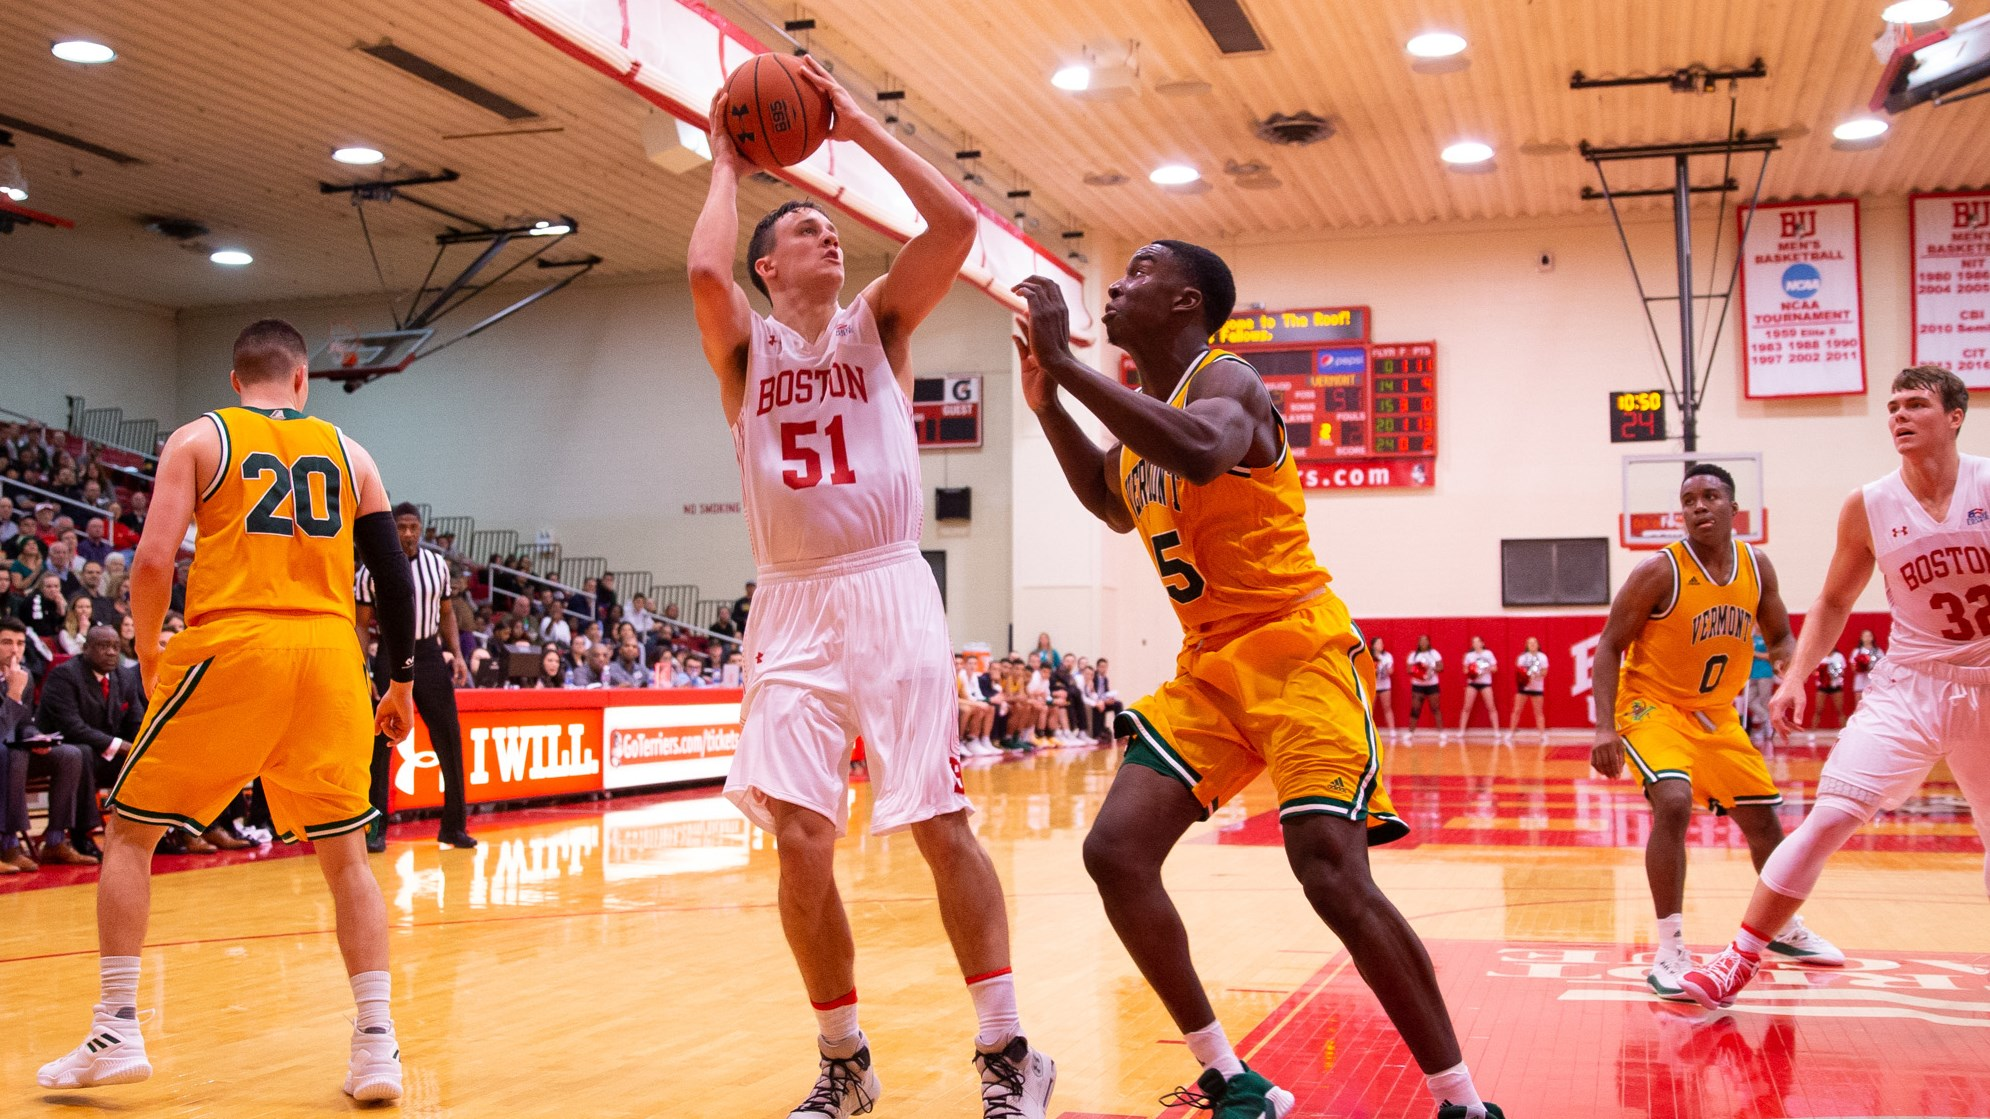 Max Mahoney attempts a jumper from the baseline against Vermont.